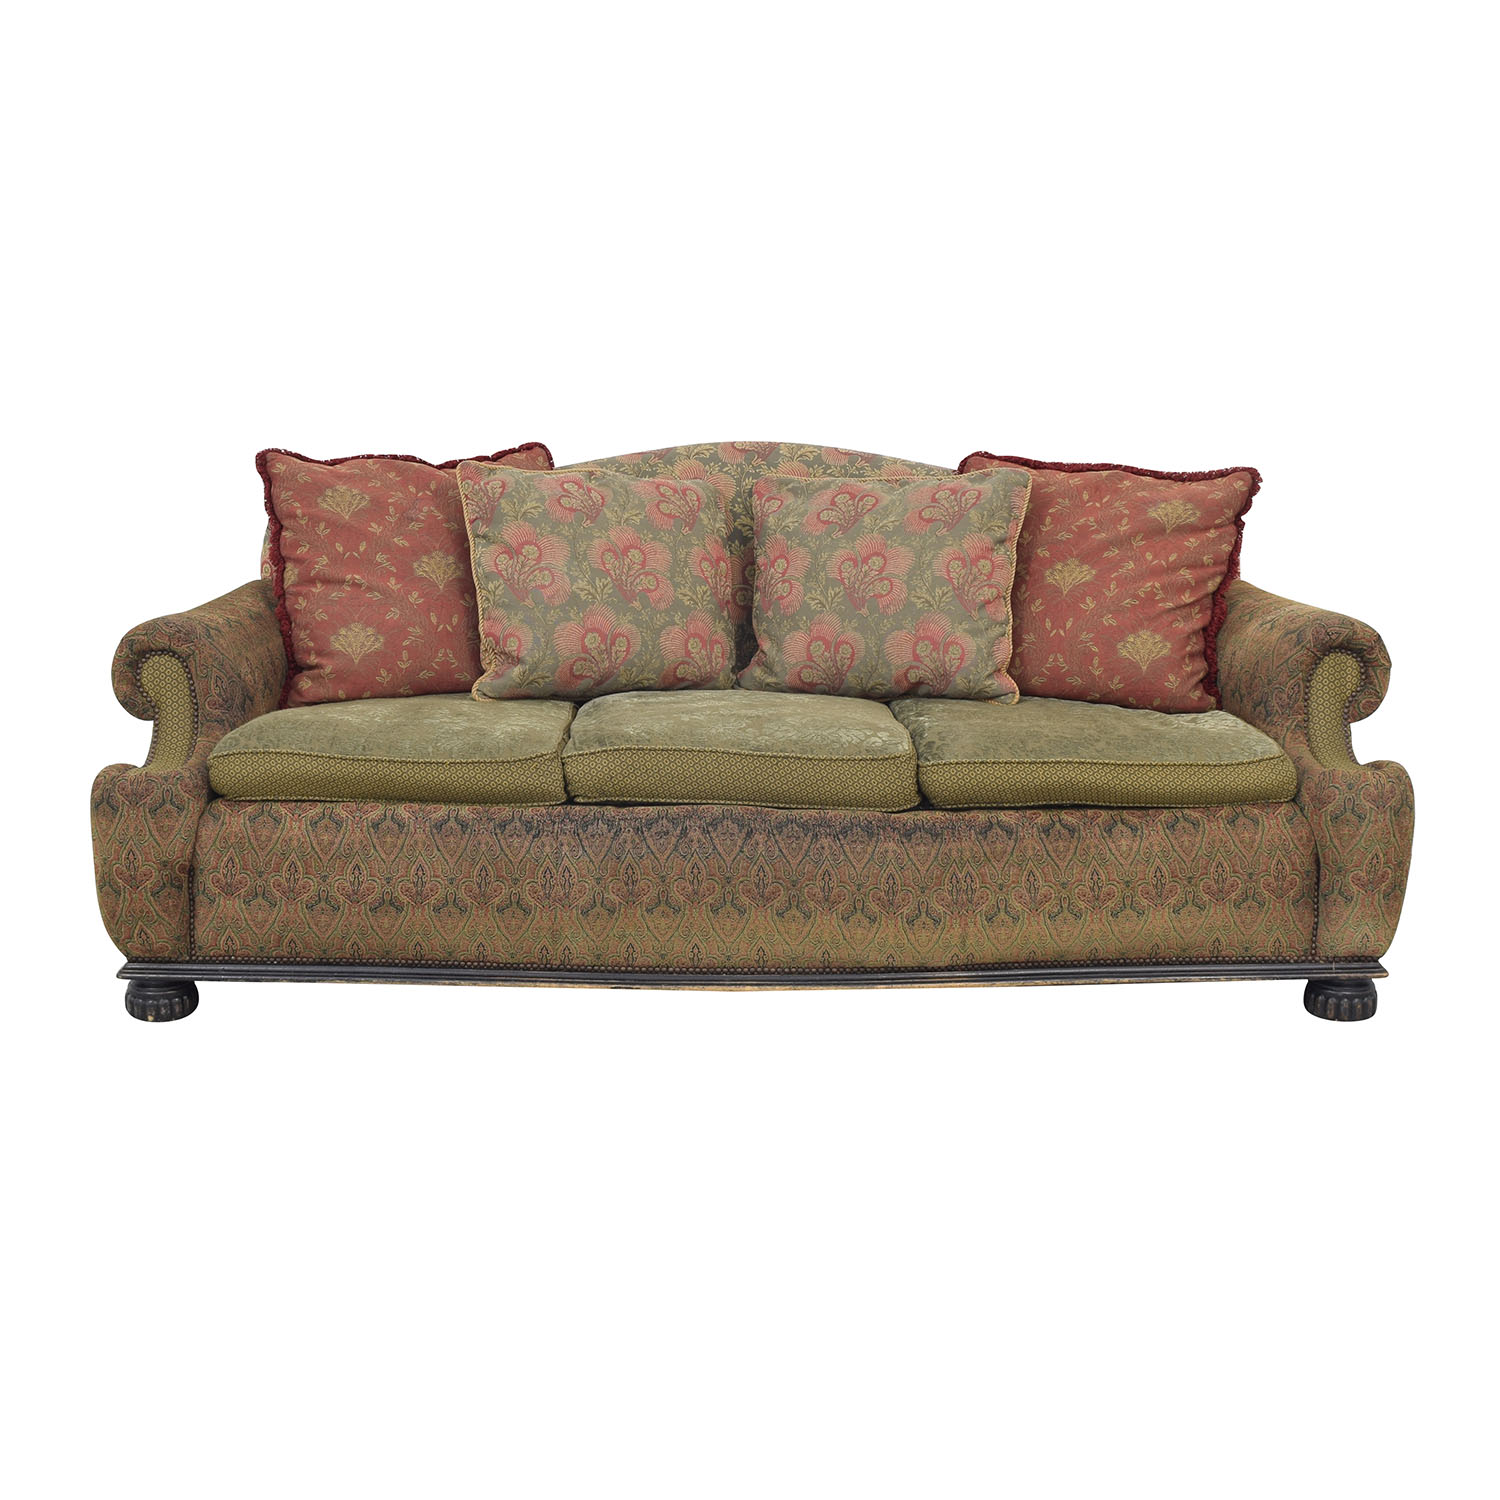 EJ Victor Carol Hicks Bolton for EJ Victor Three Cushion Sofa discount